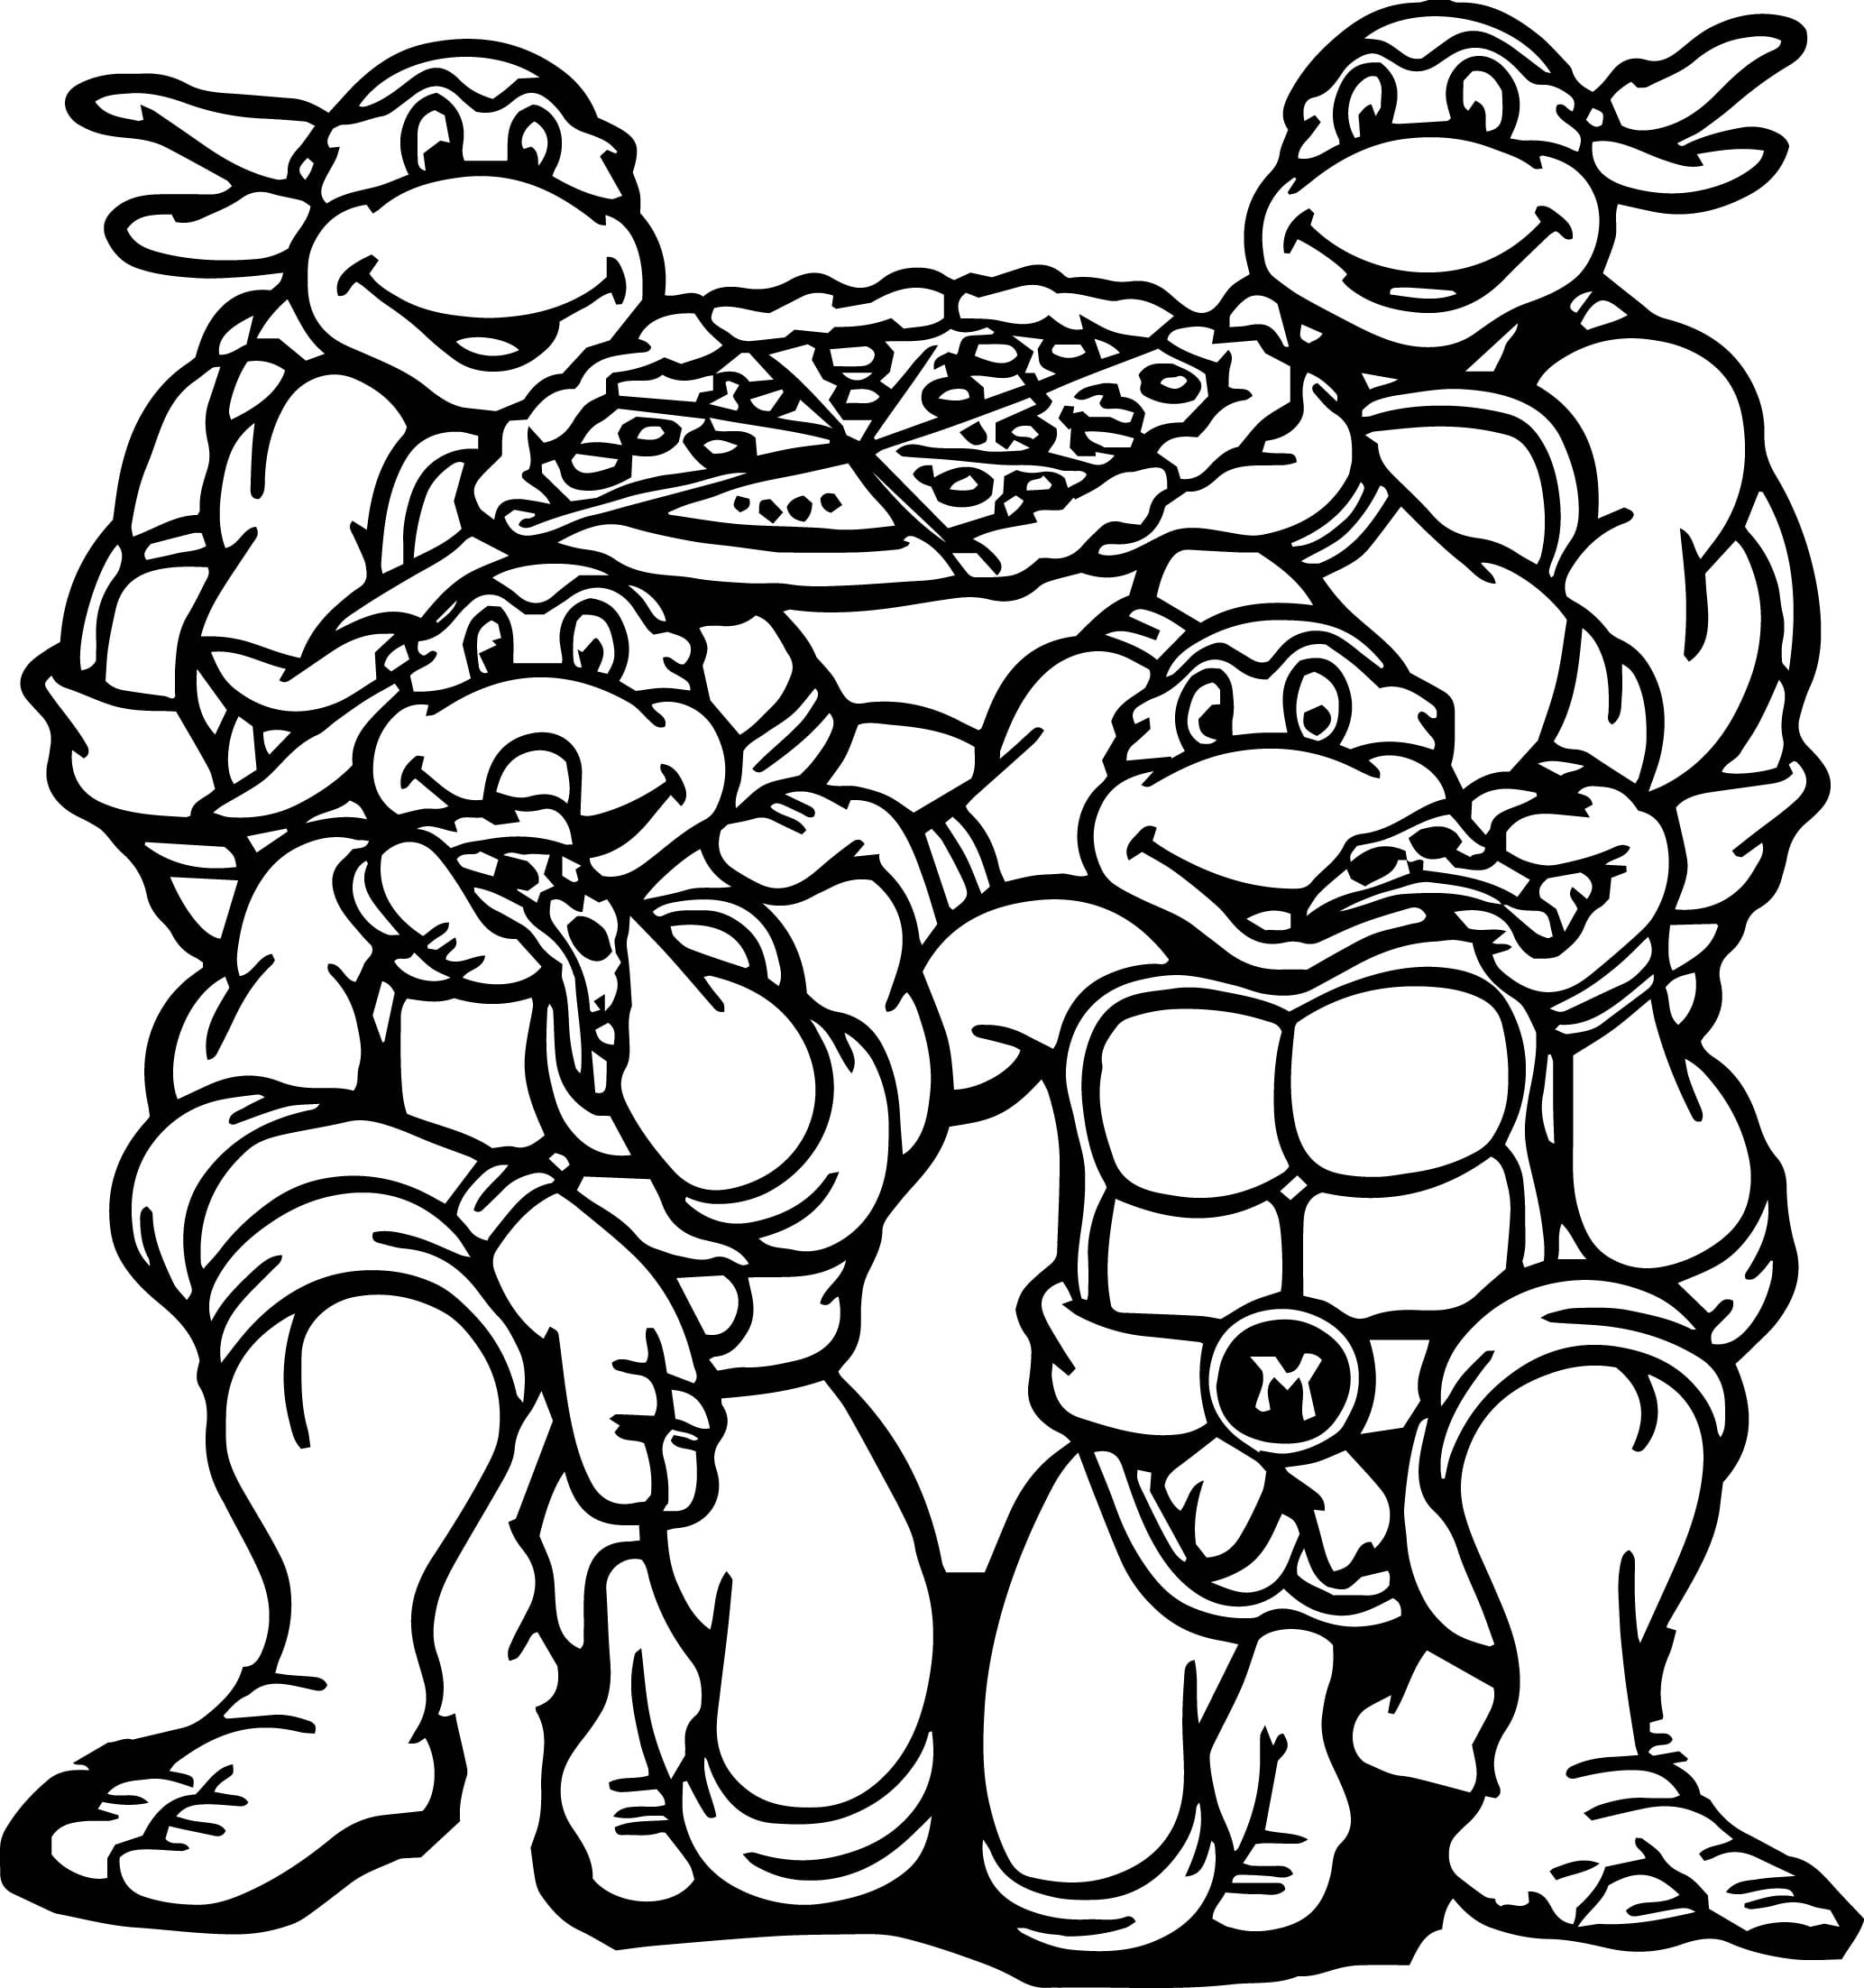 Free Ninja Turtle Coloring Pages